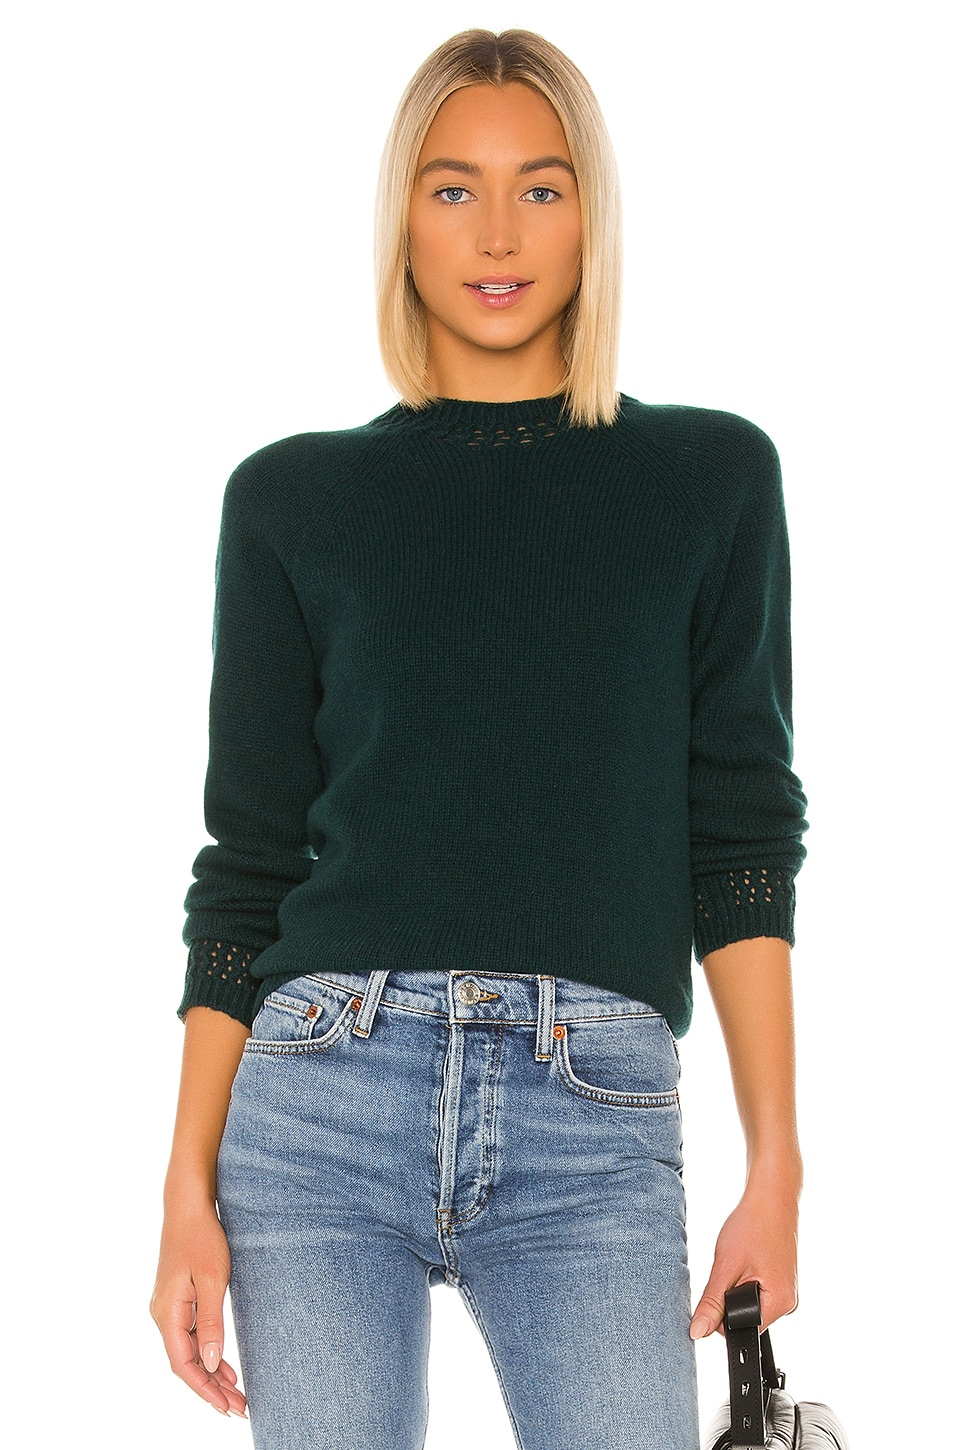 A.P.C. Janet Pullover in Vert Sapin